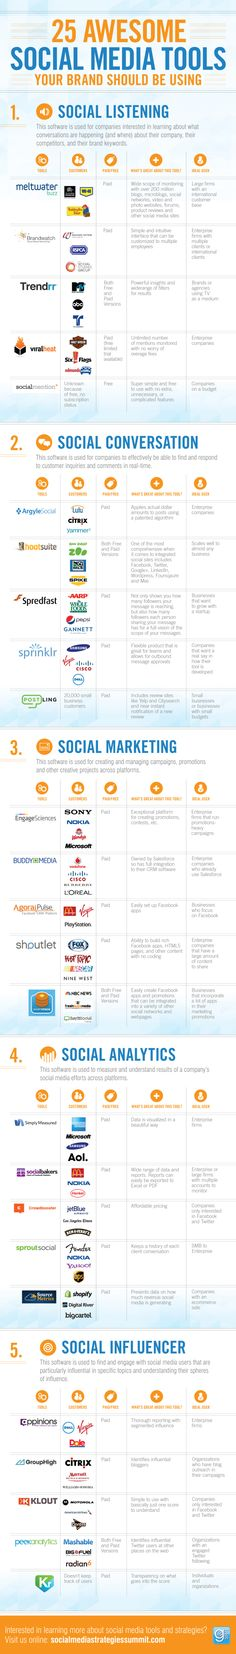 25 Awesome Social Media tools your brand should be using #infografia #infographic #socialmedia